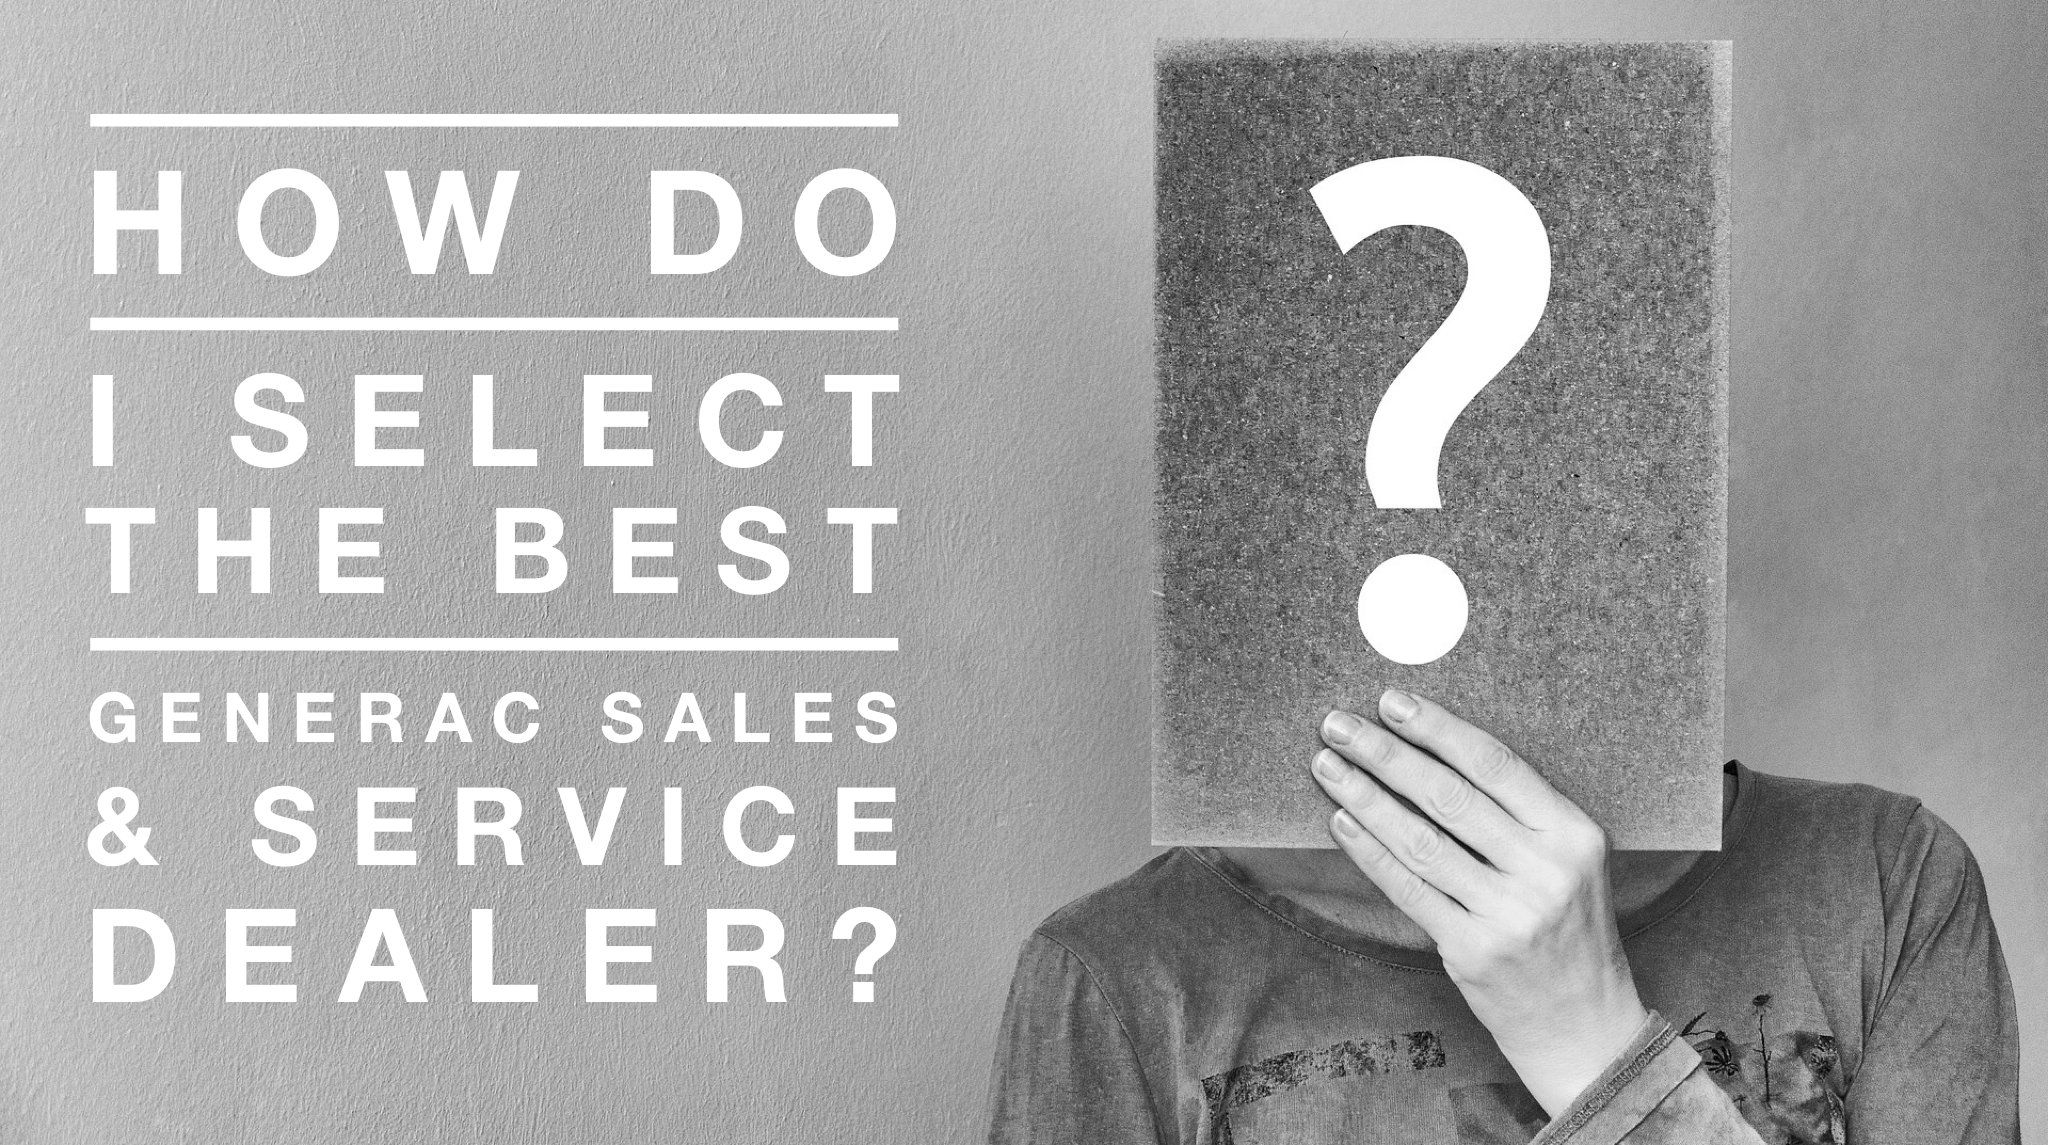 How Do I Select The Best Generac Authorized Sales & Service Dealer In New Jersey?